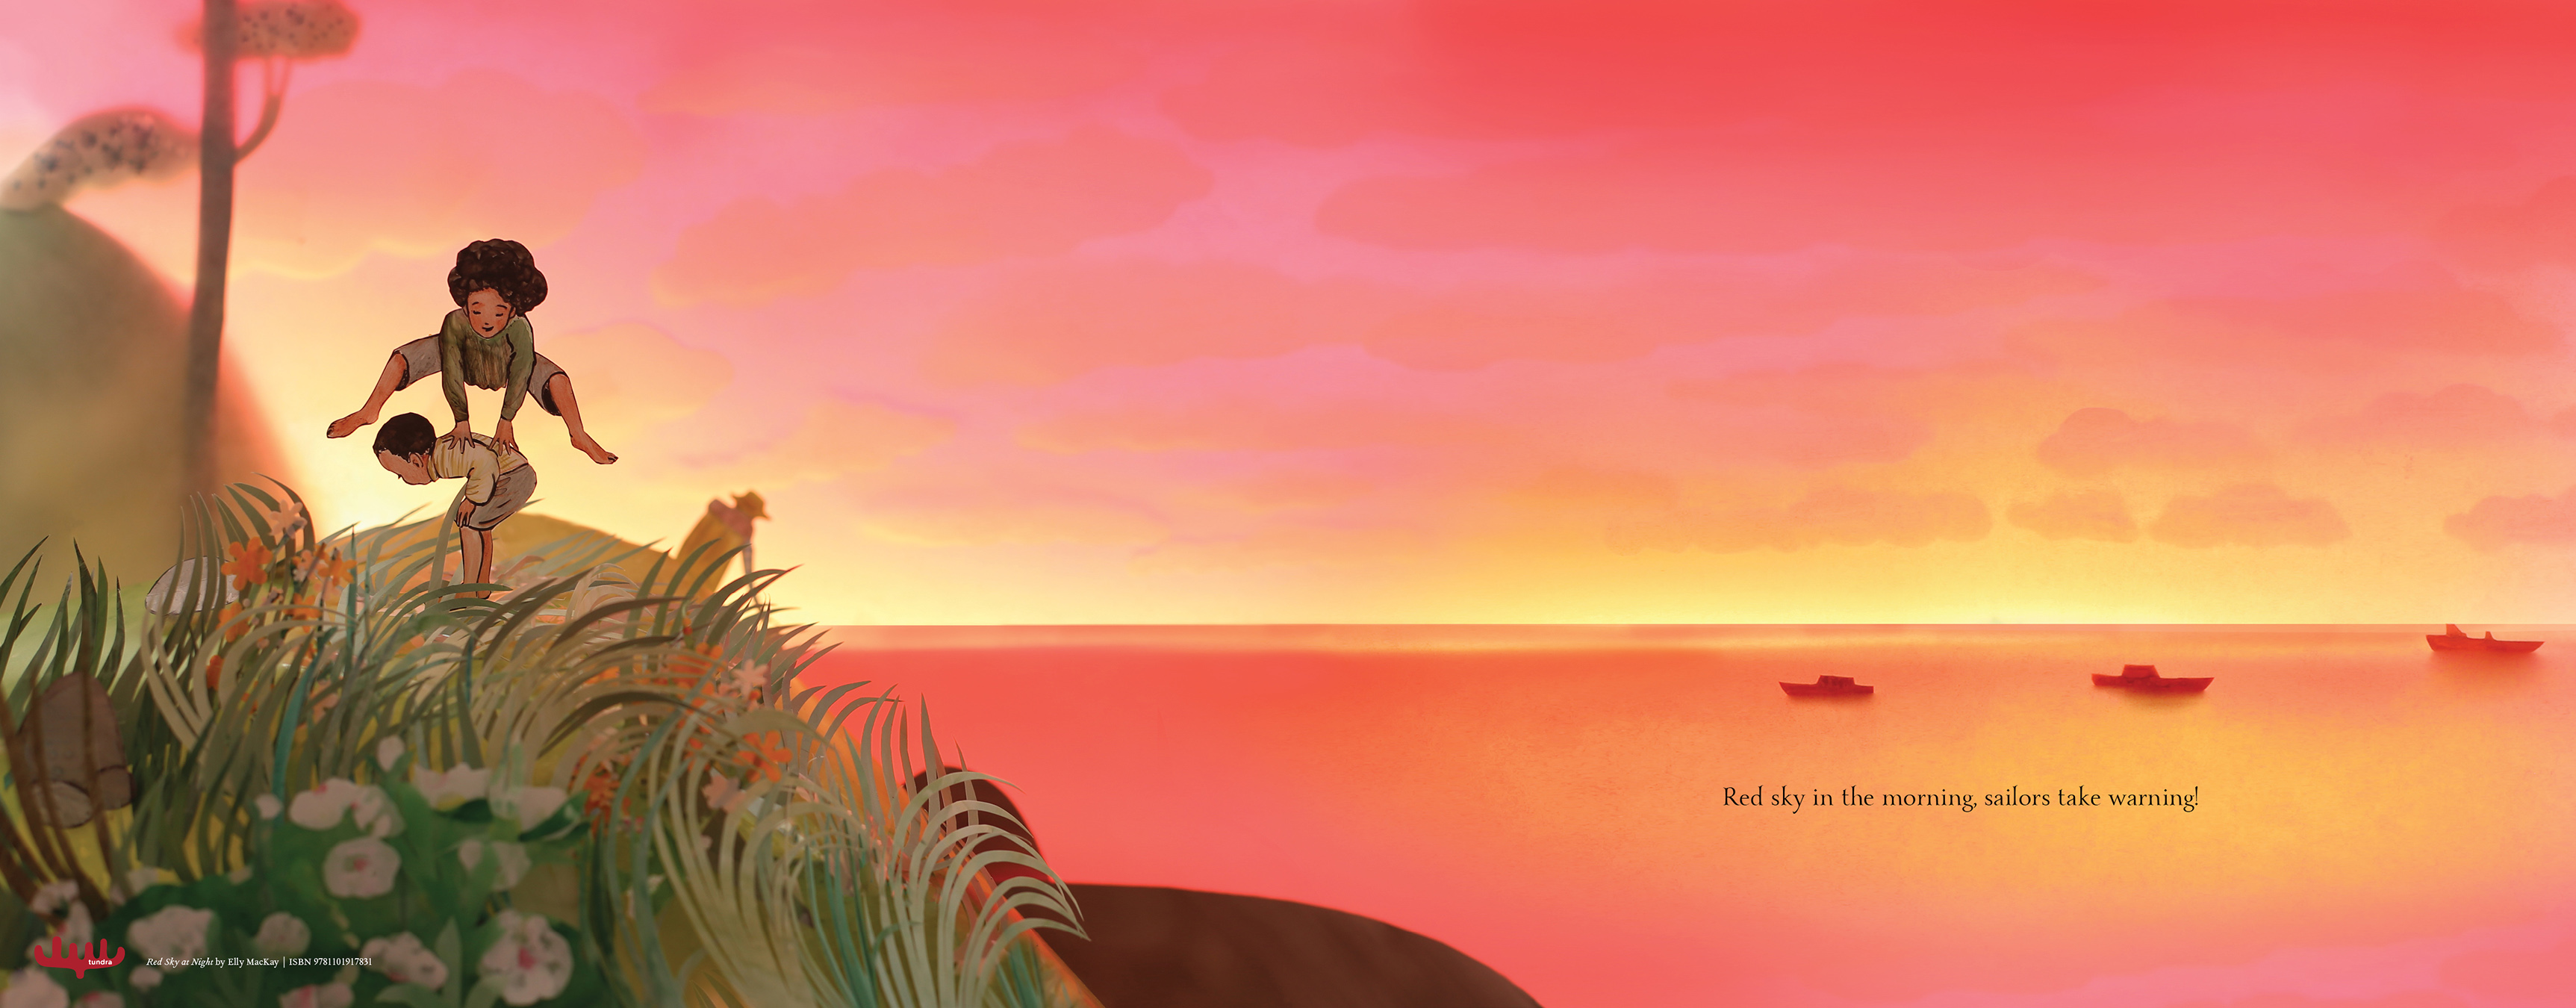 celebrate-picture-books-picture-book-review-red-sky-in-the-morning